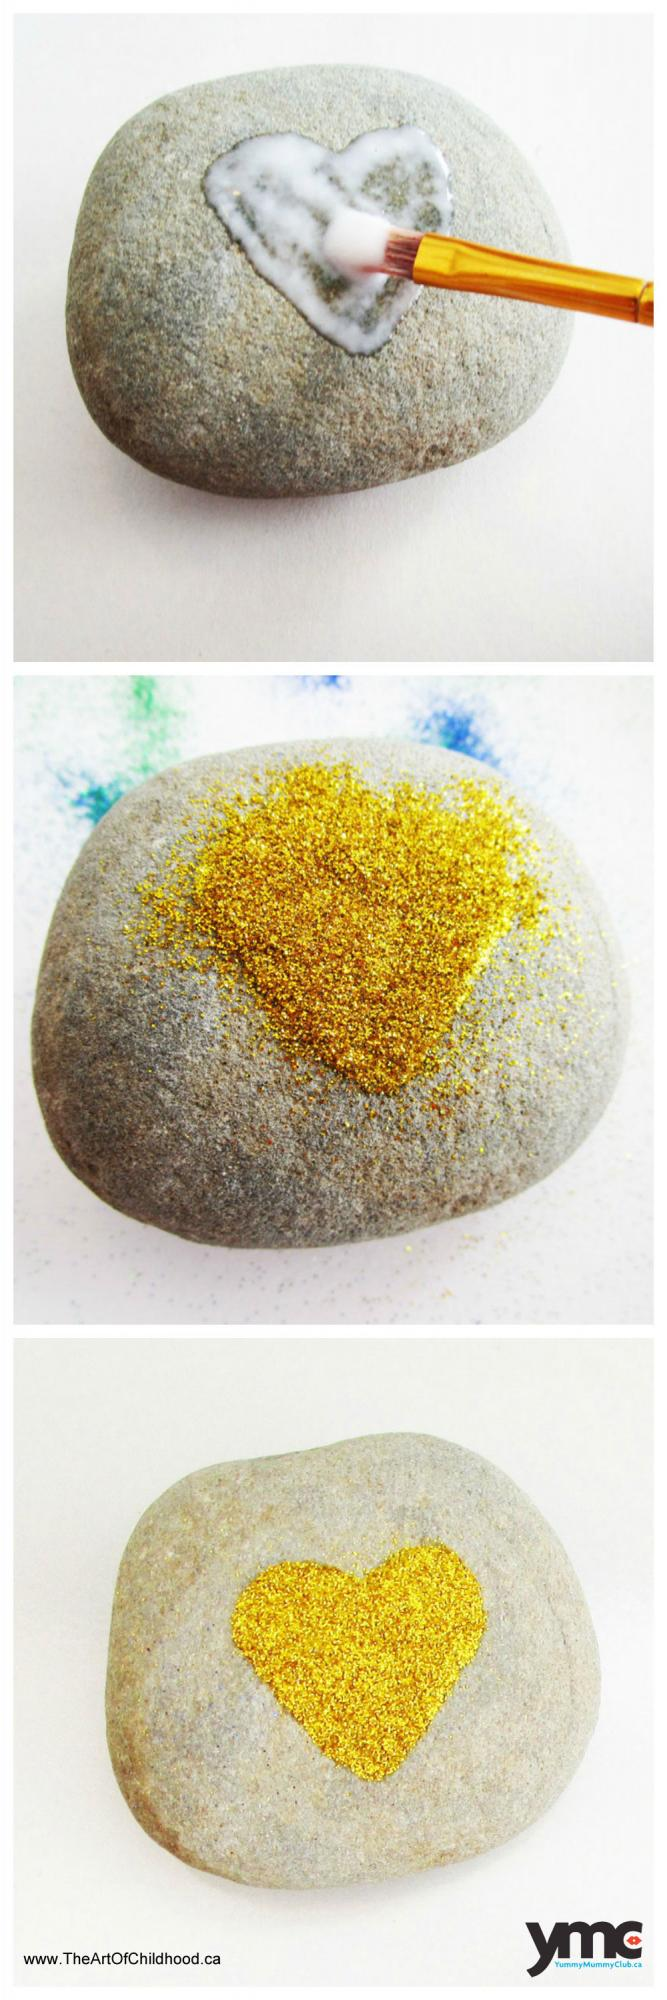 Paint a heart on a rock using glue, sprinkle it with glitter, shake off the glitter and voila.